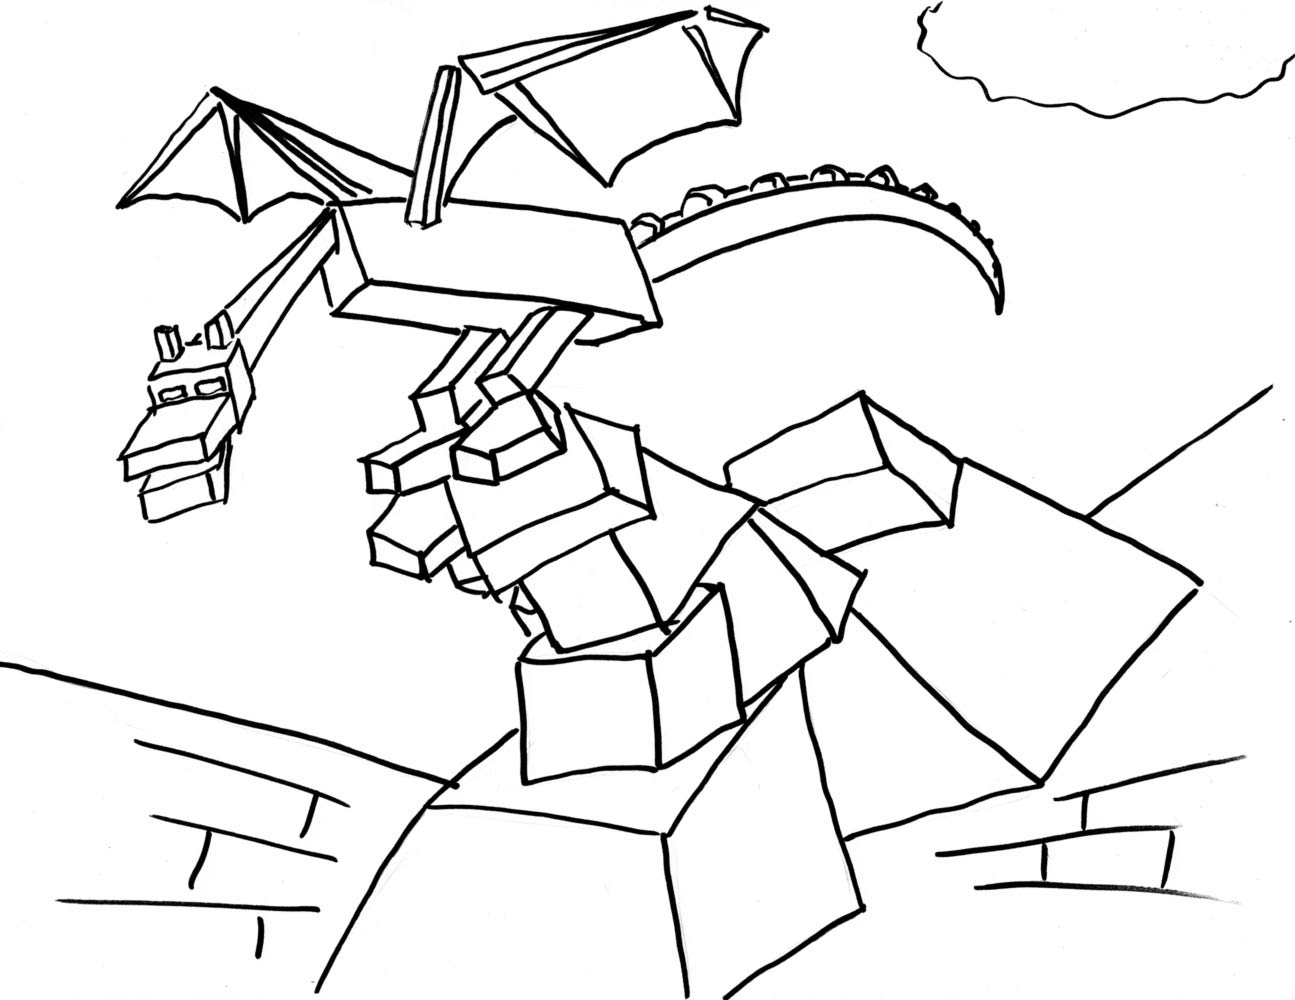 minecraft dragon coloring pages minecraft ender dragon drawing at getdrawings free download minecraft coloring pages dragon